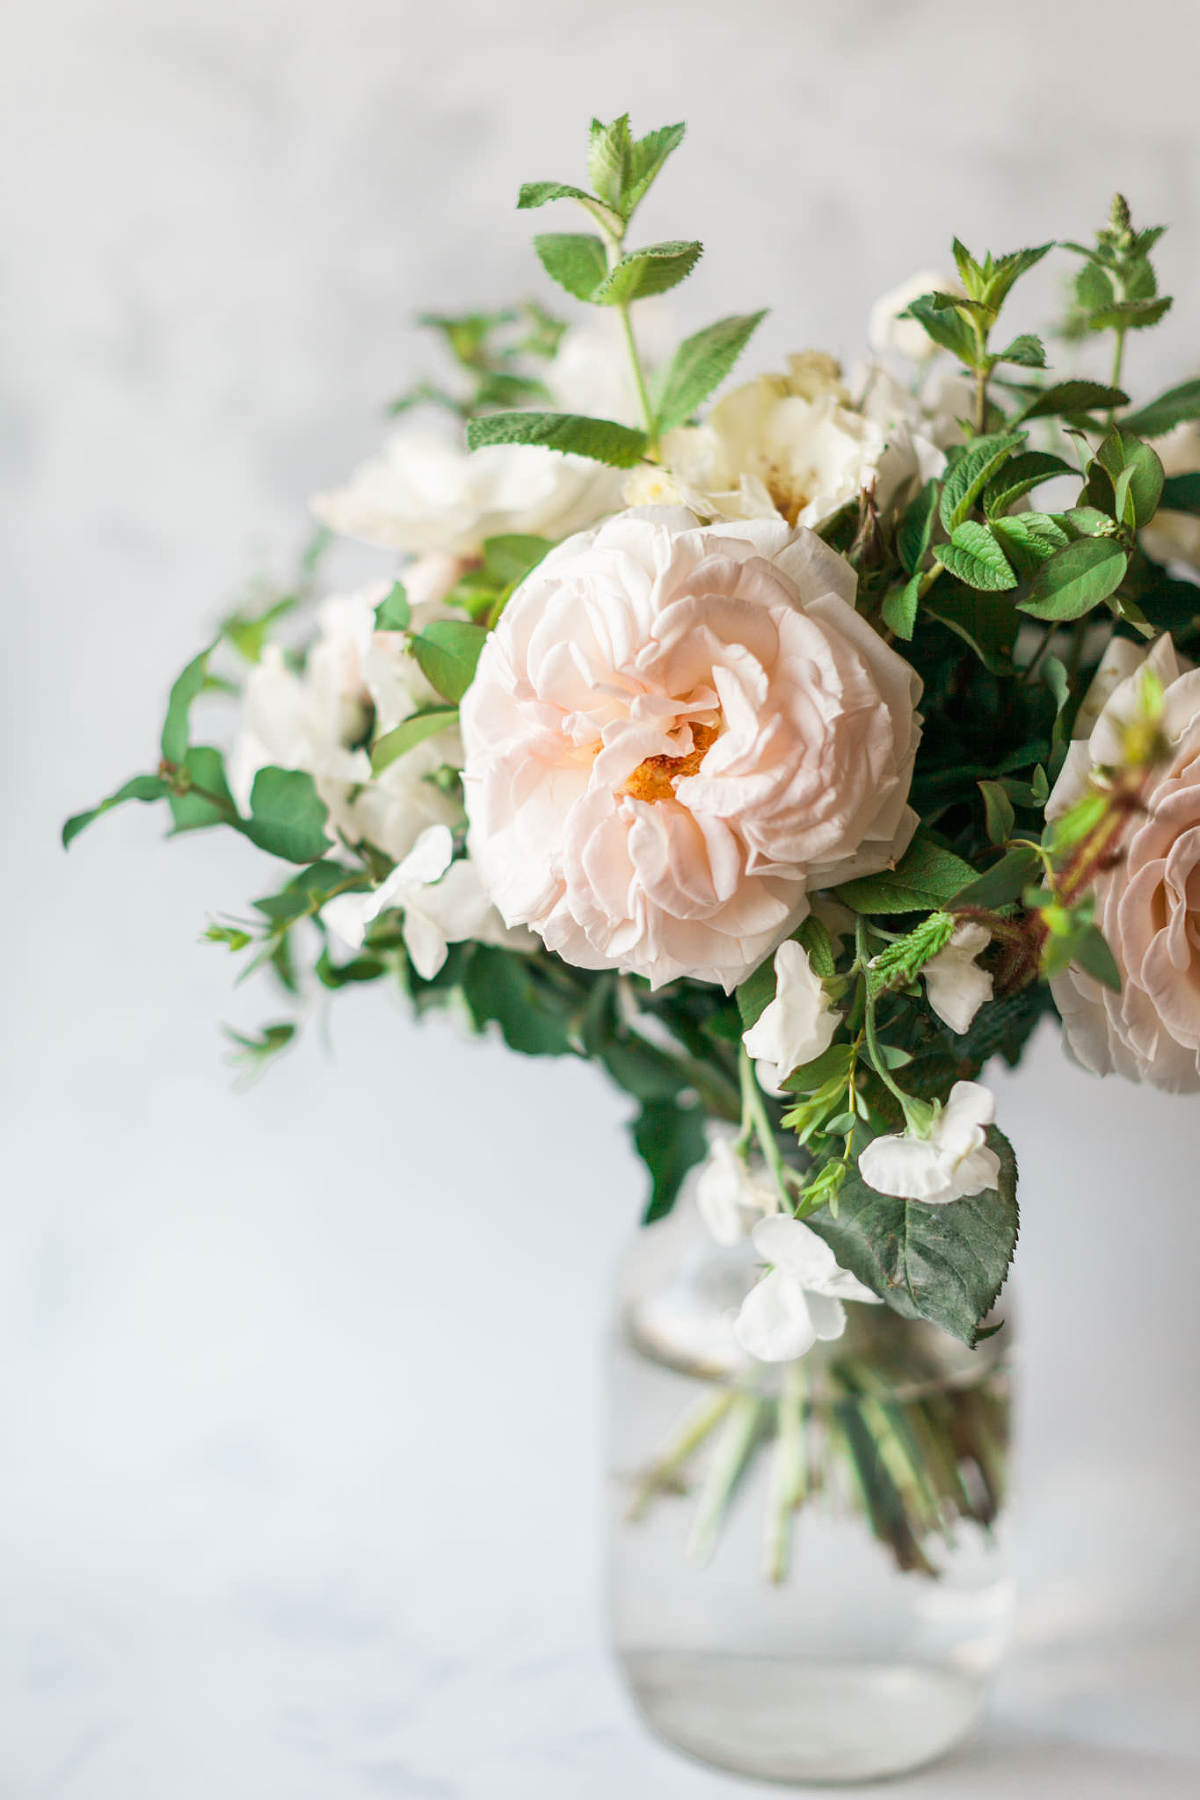 Product photography showing a bouquet of blush flowers and greenery in a mason jar